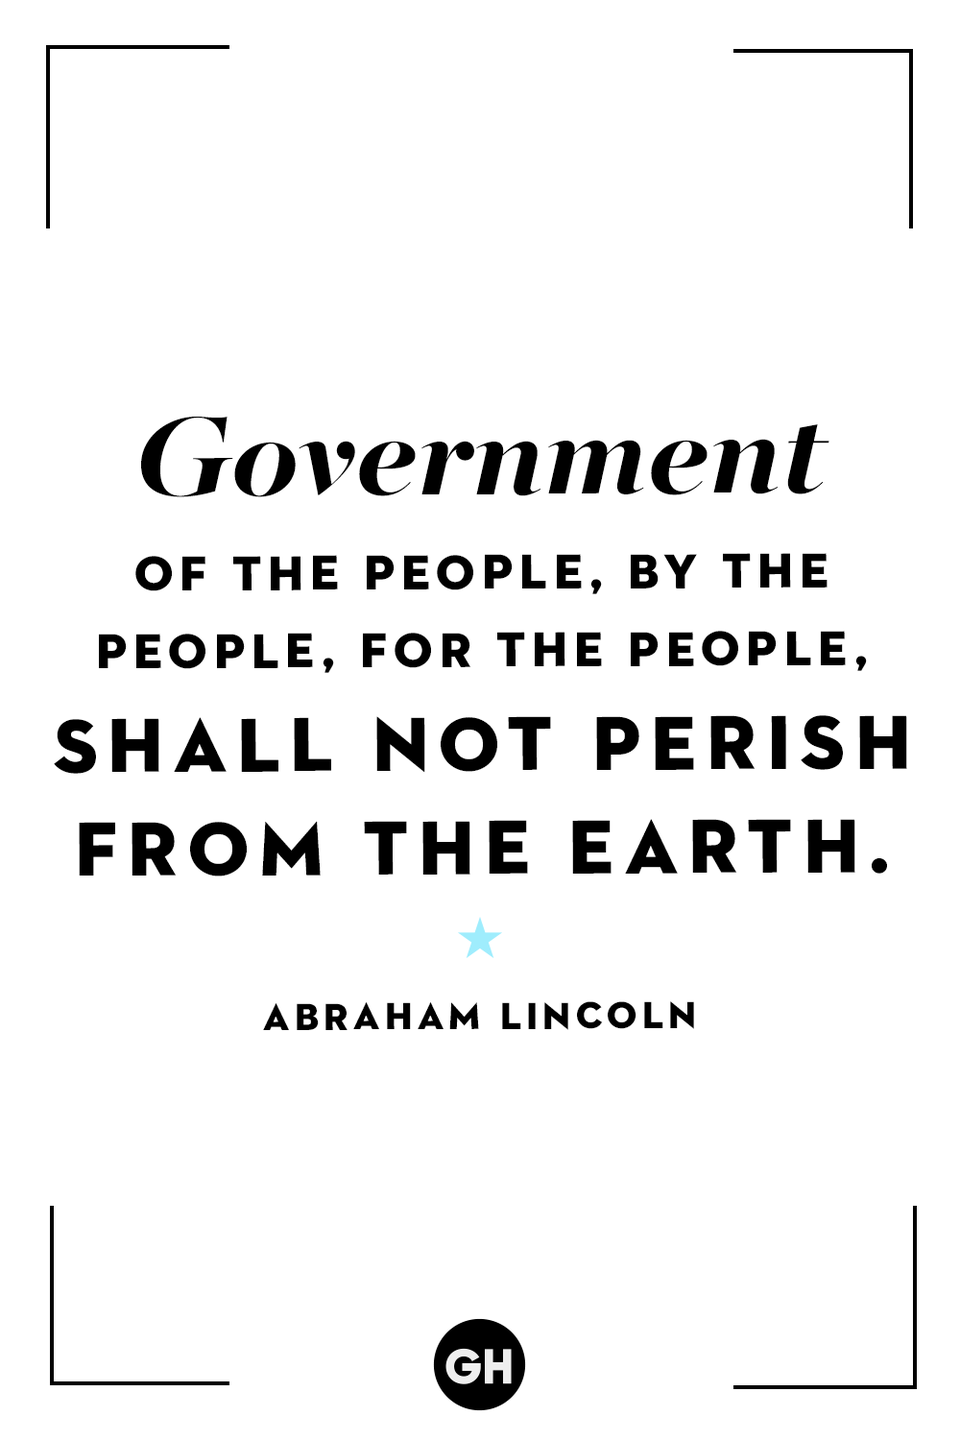 <p>Government of the people, by the people, for the people, shall not perish from the Earth.</p>